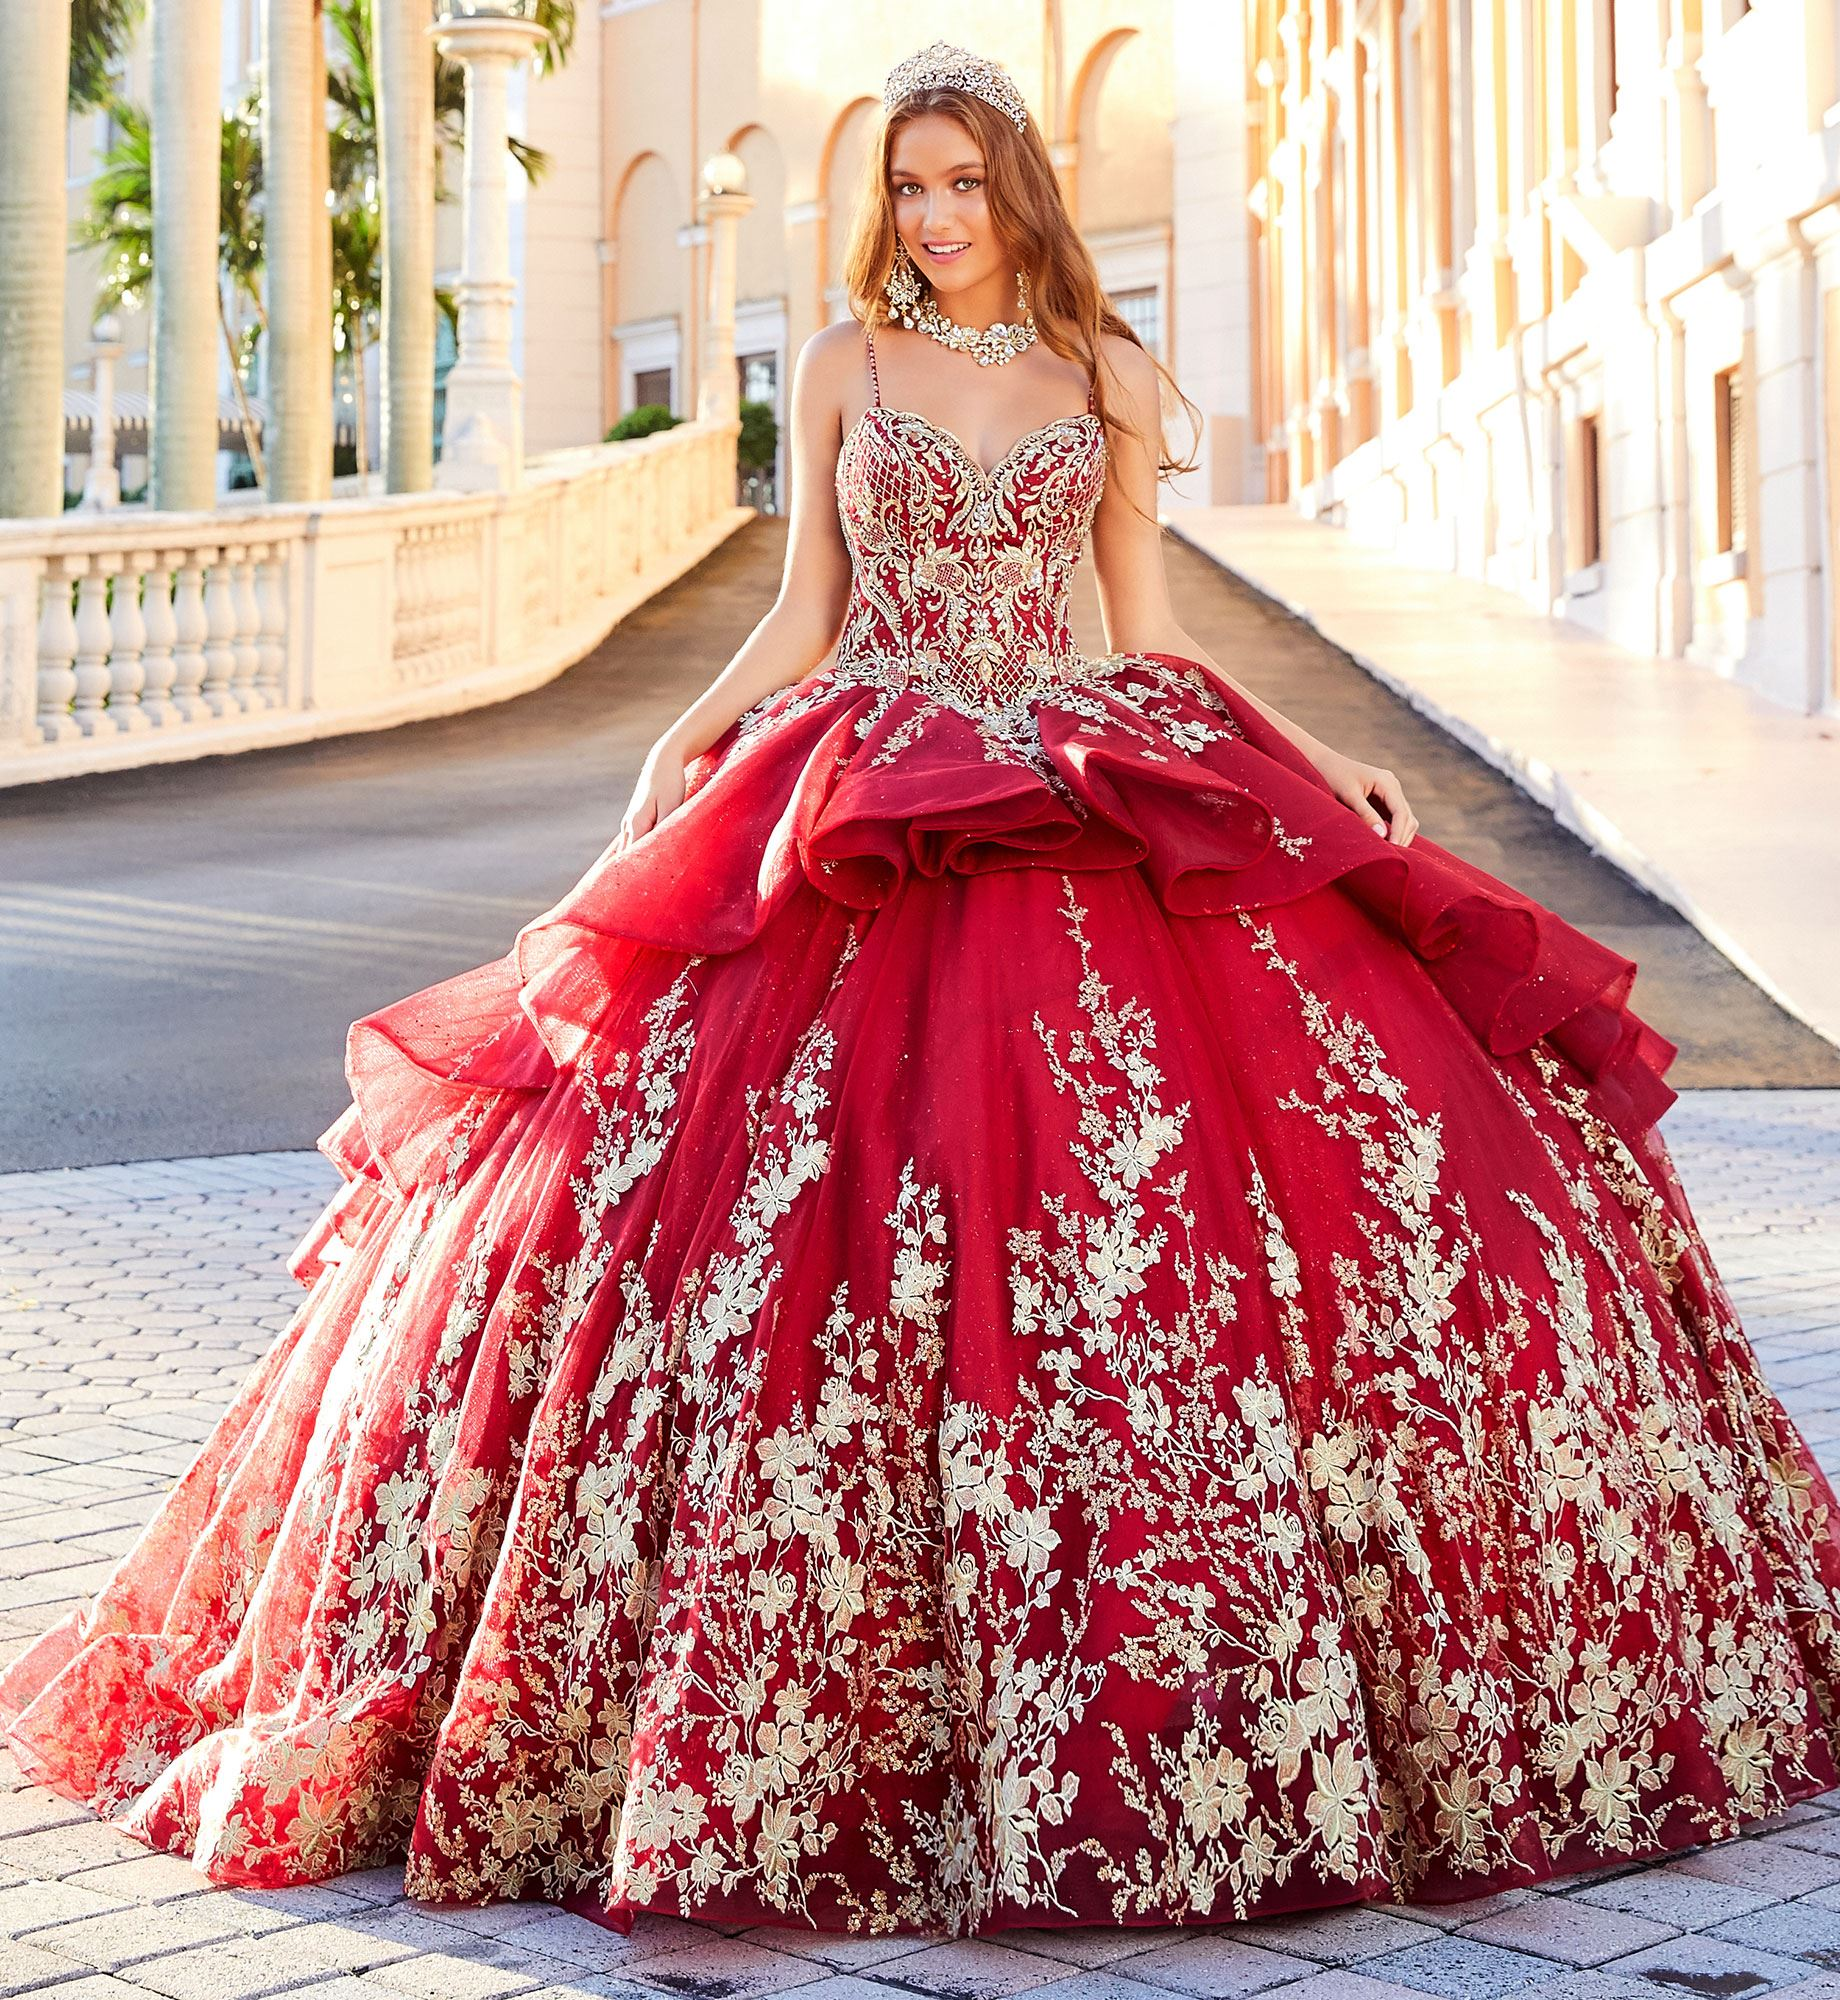 Brunette model in red and gold quinceañera dress